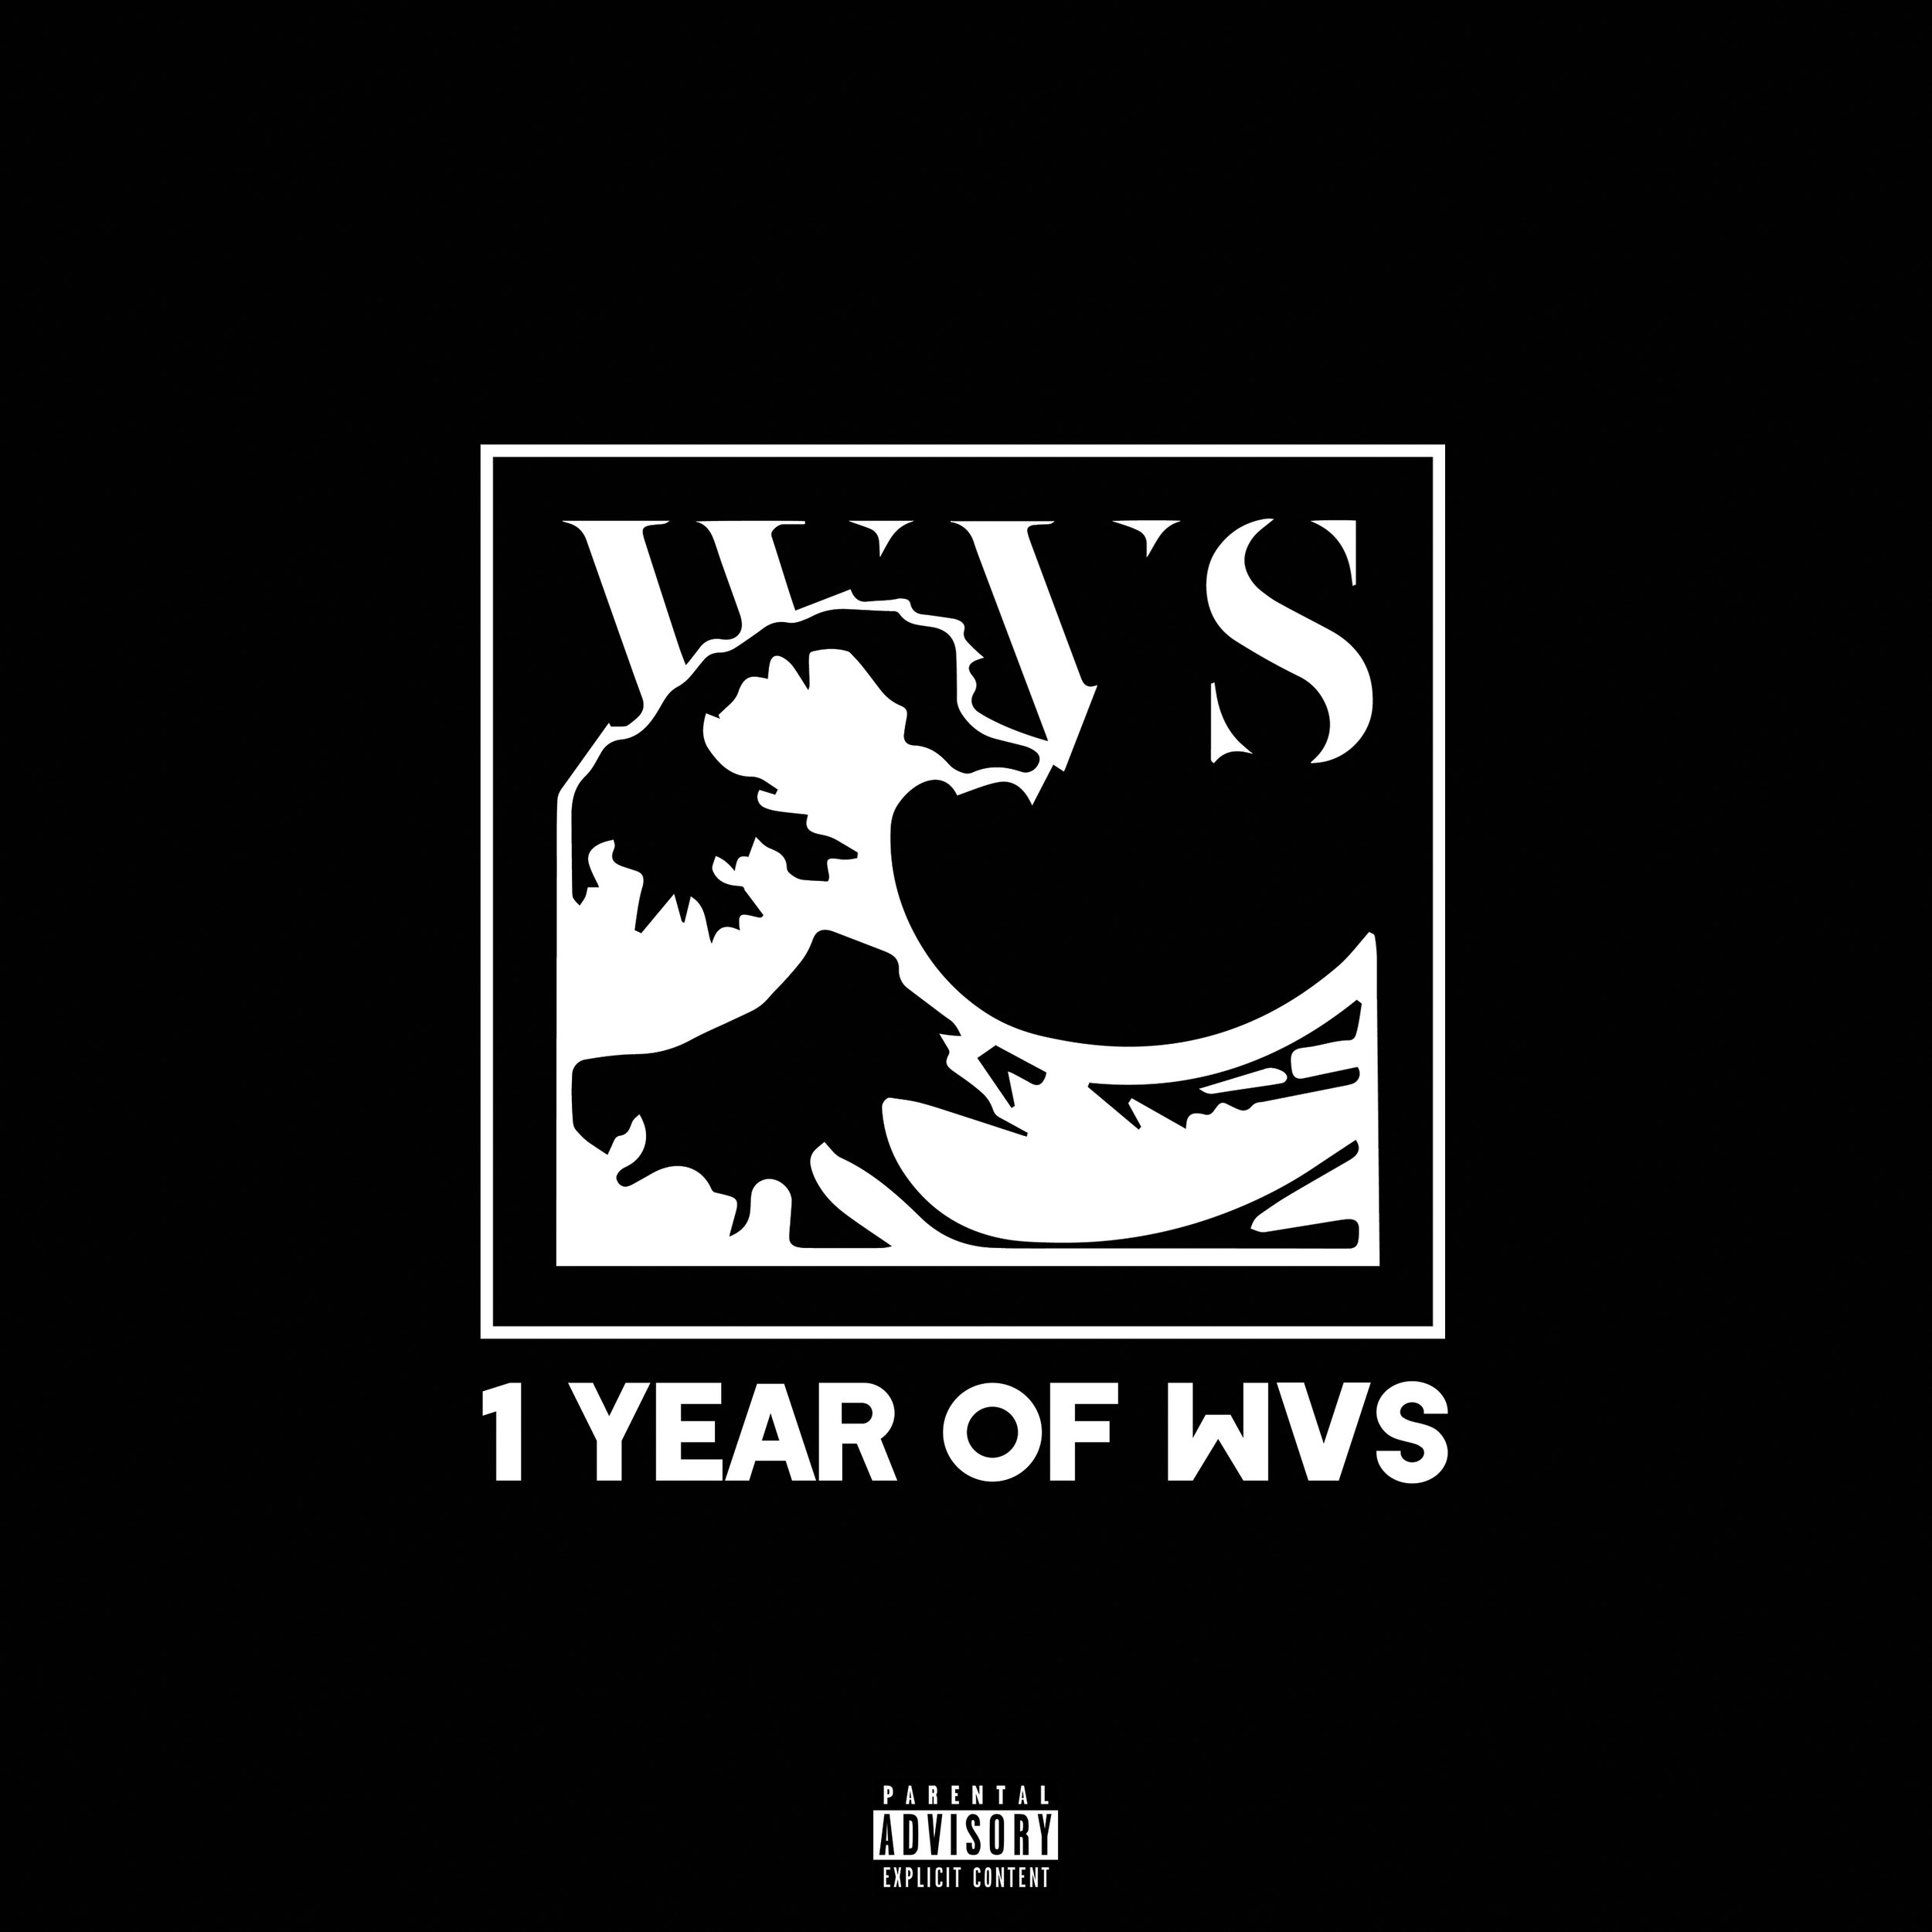 WVS021 - Various Artists - 1 Year of WVS - Artwork.jpg